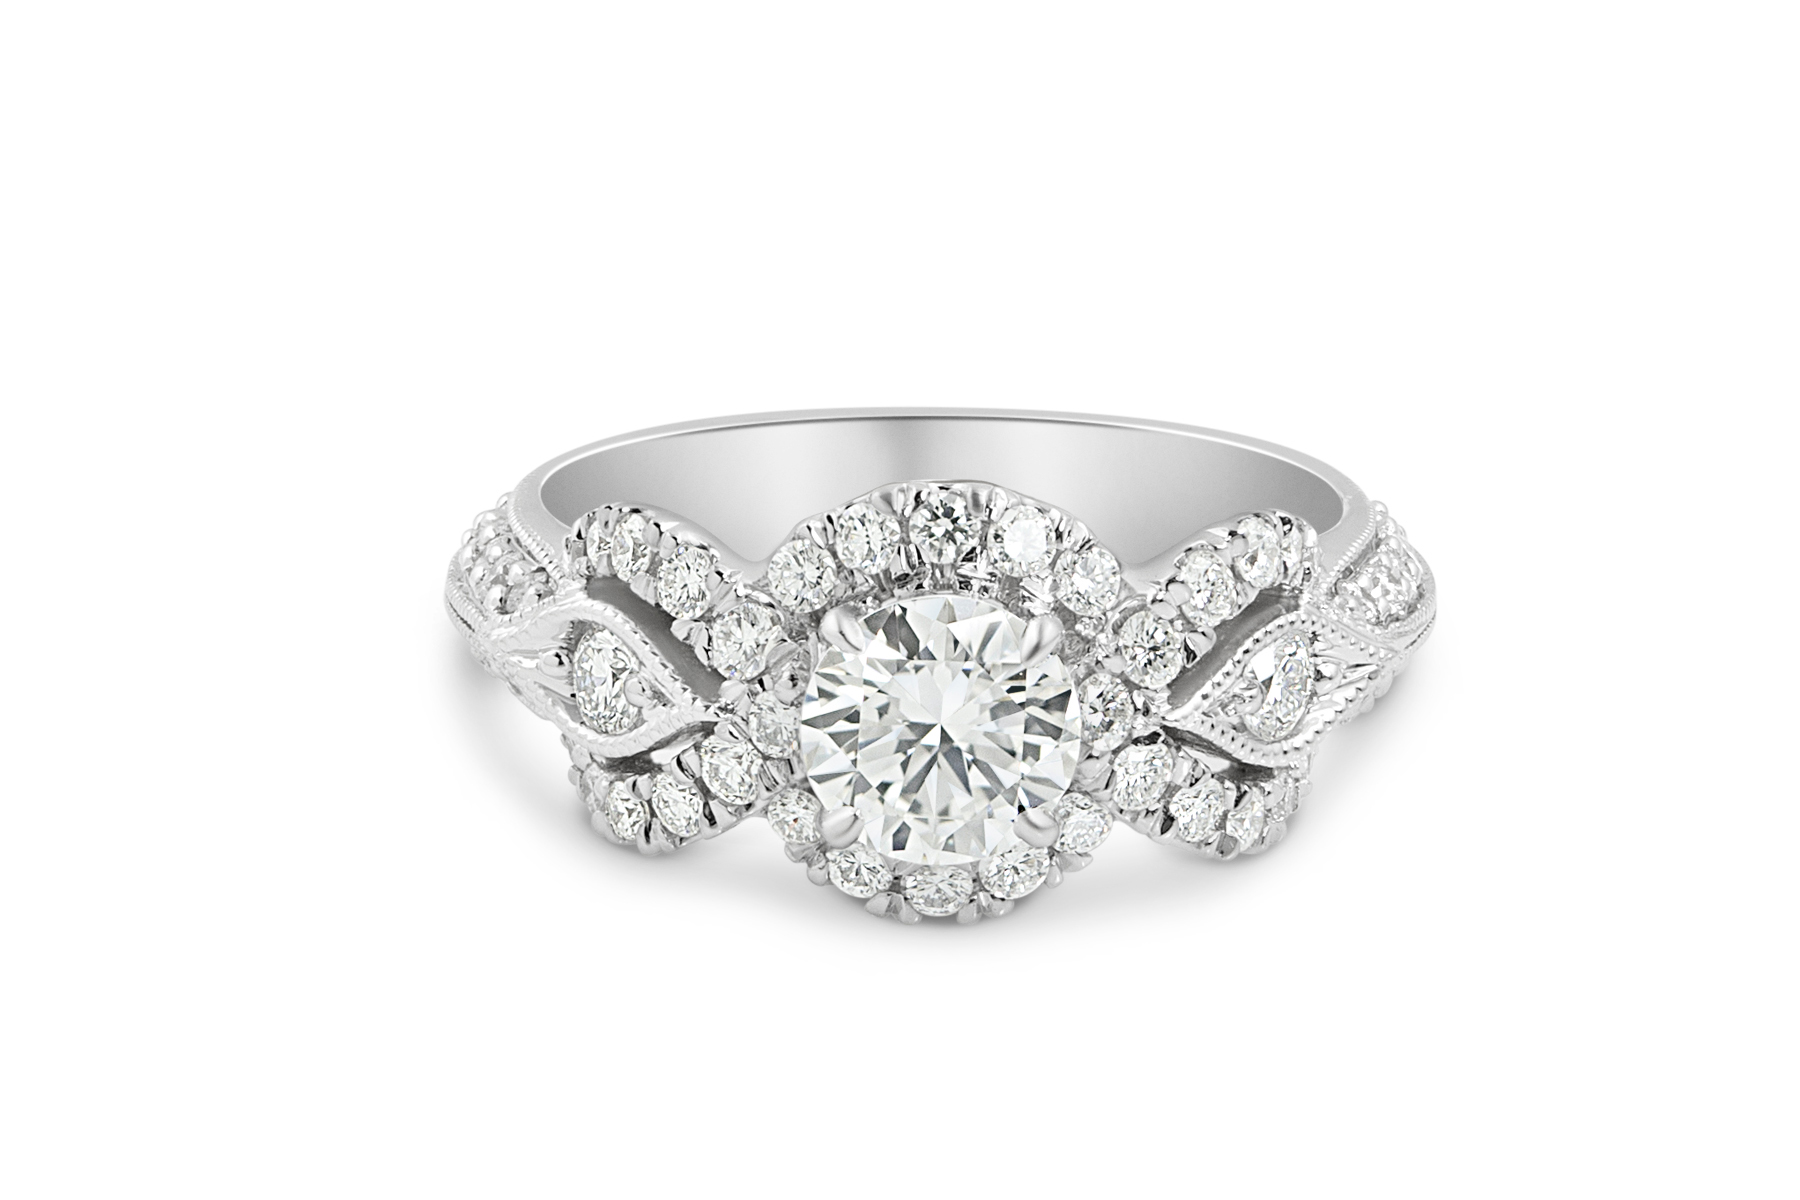 Engagement-Ring-Front-View.jpg